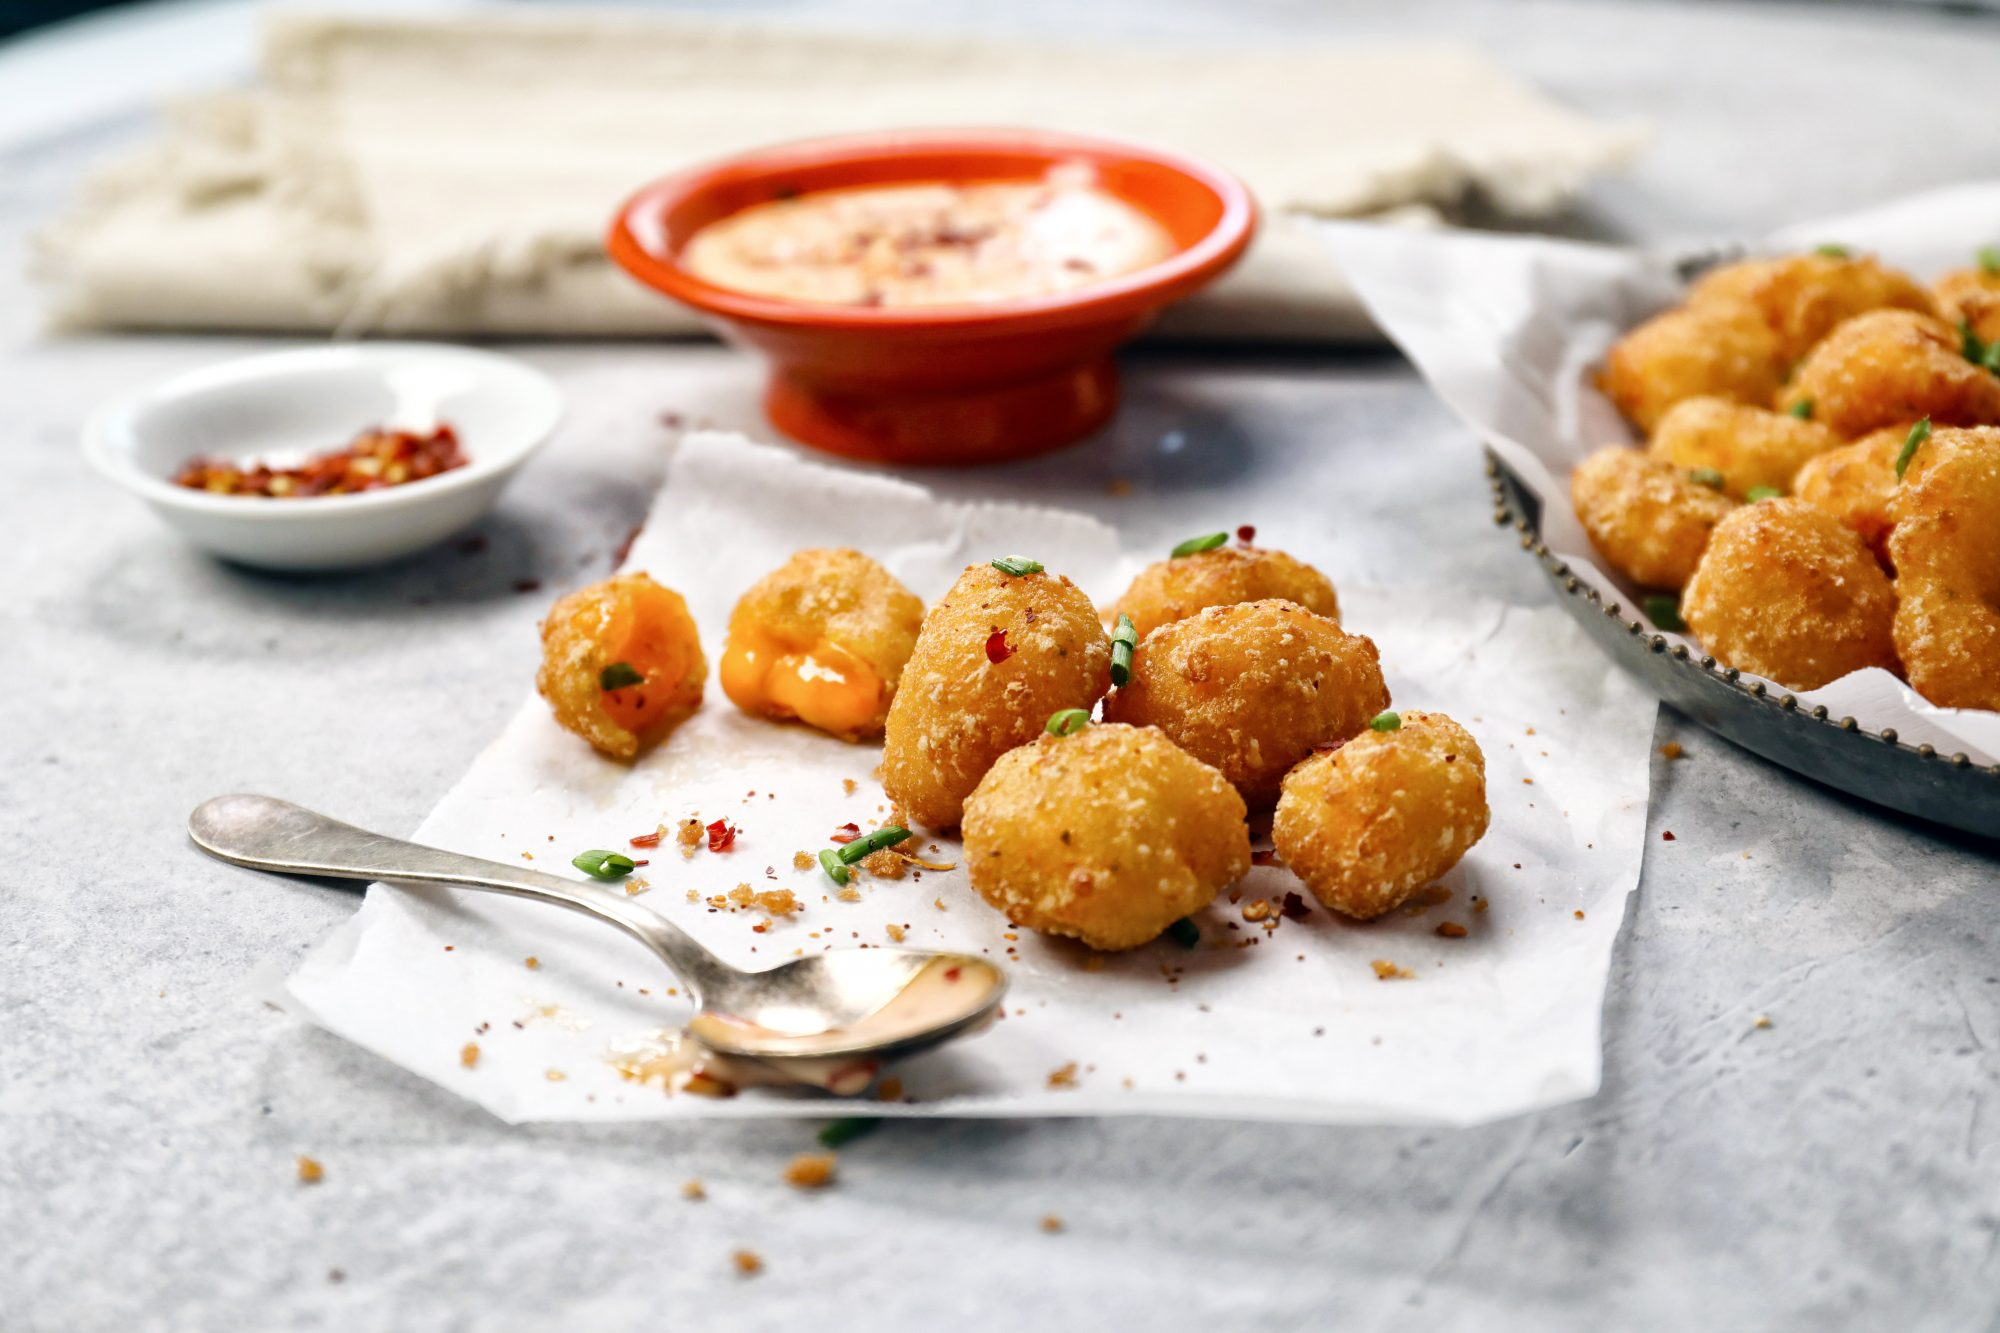 Cheddar_CheeseCurds_Crave